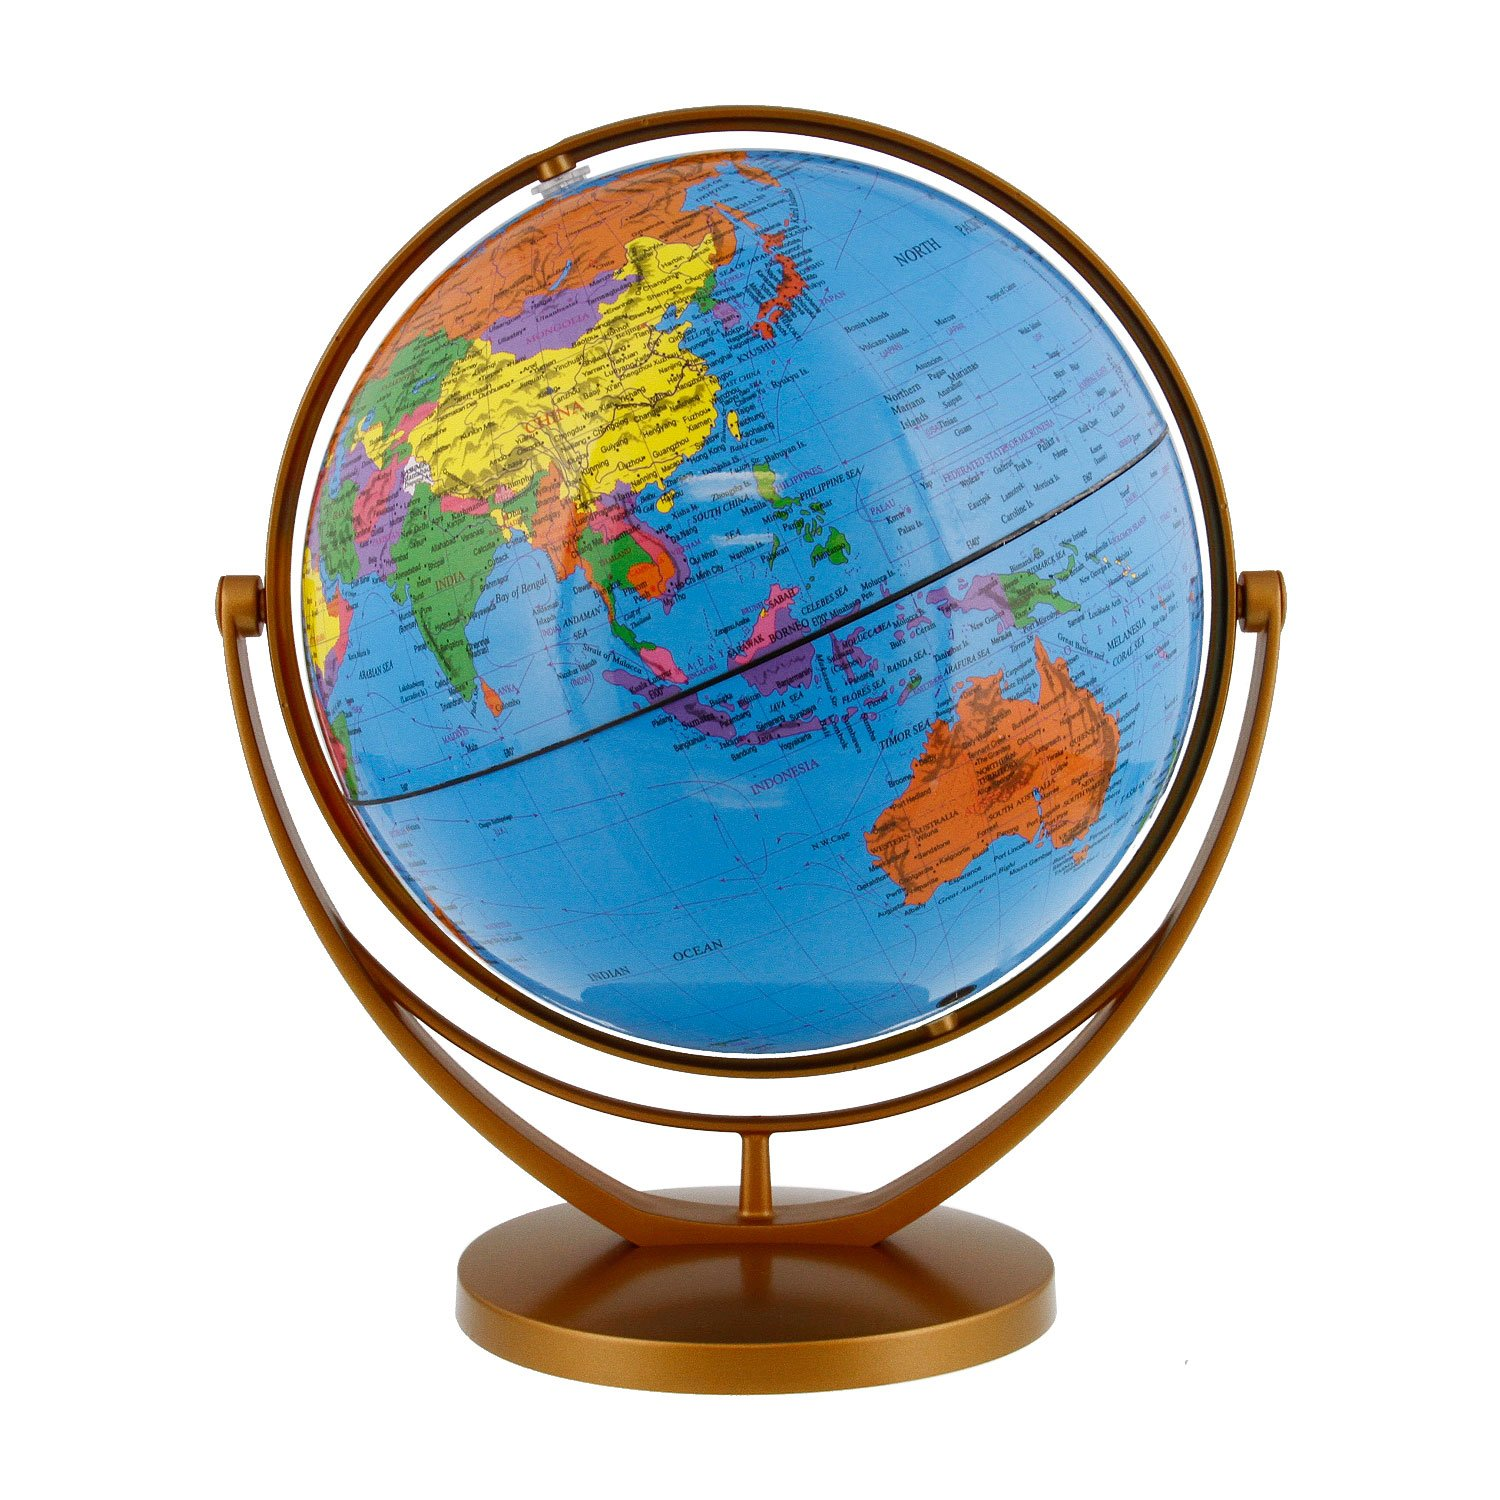 Amazon tcp global 8 20cm blue ocean desktop world globe gold amazon tcp global 8 20cm blue ocean desktop world globe gold base office products gumiabroncs Image collections